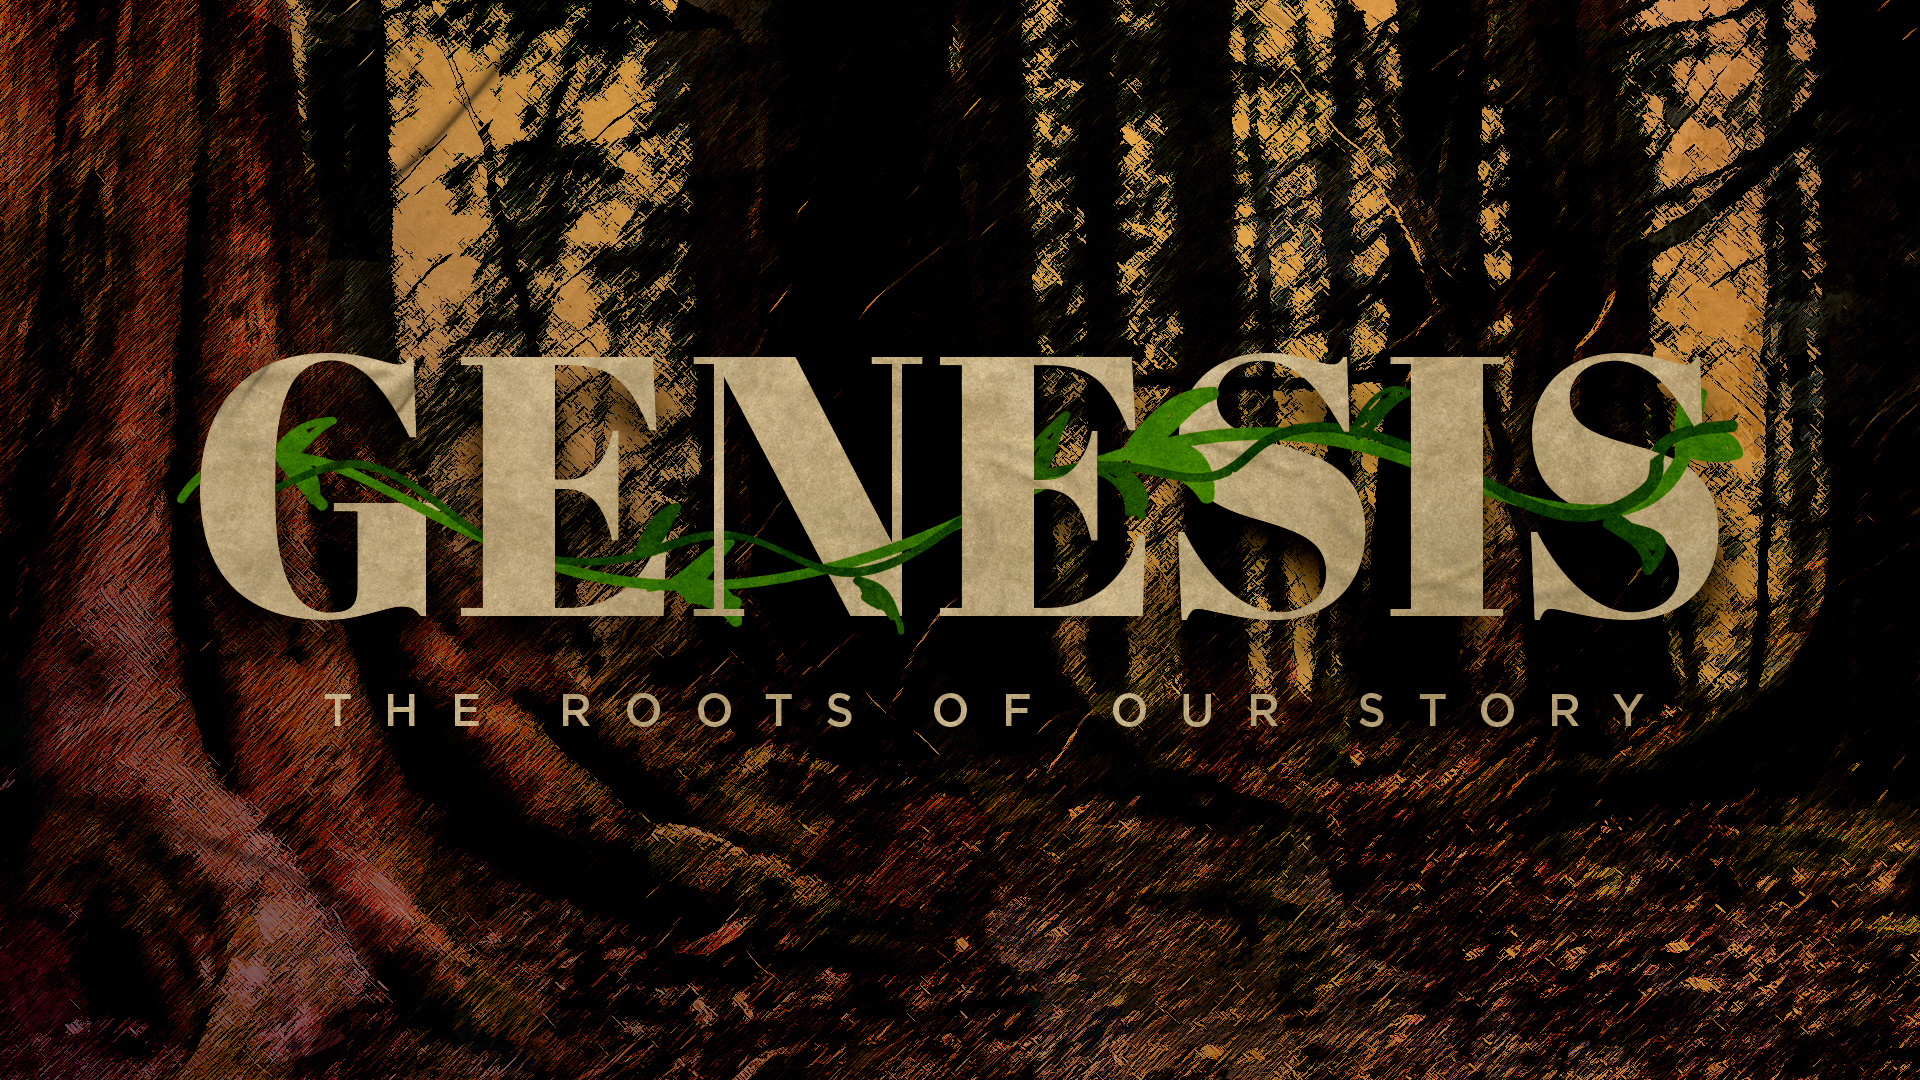 Recap of Genesis Series: The Roots of Our Story